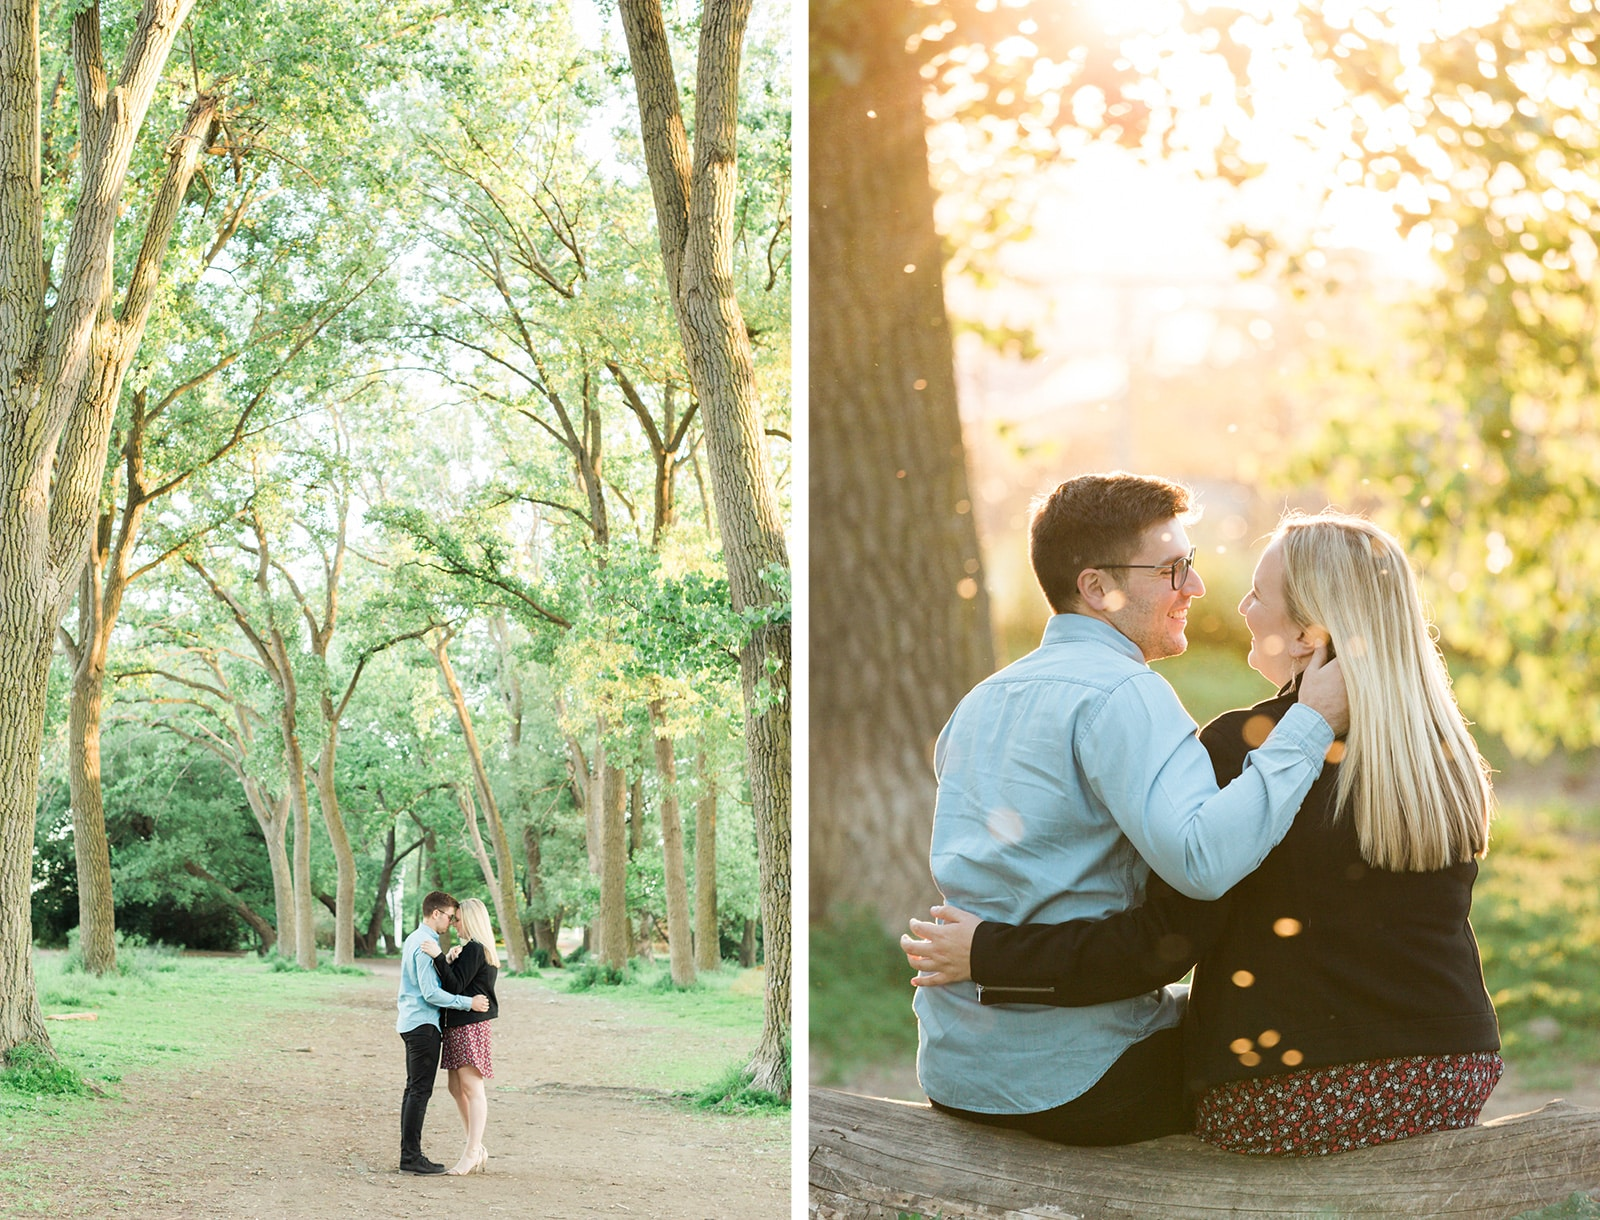 A Sweet Anniversary Session: Marley + Javier